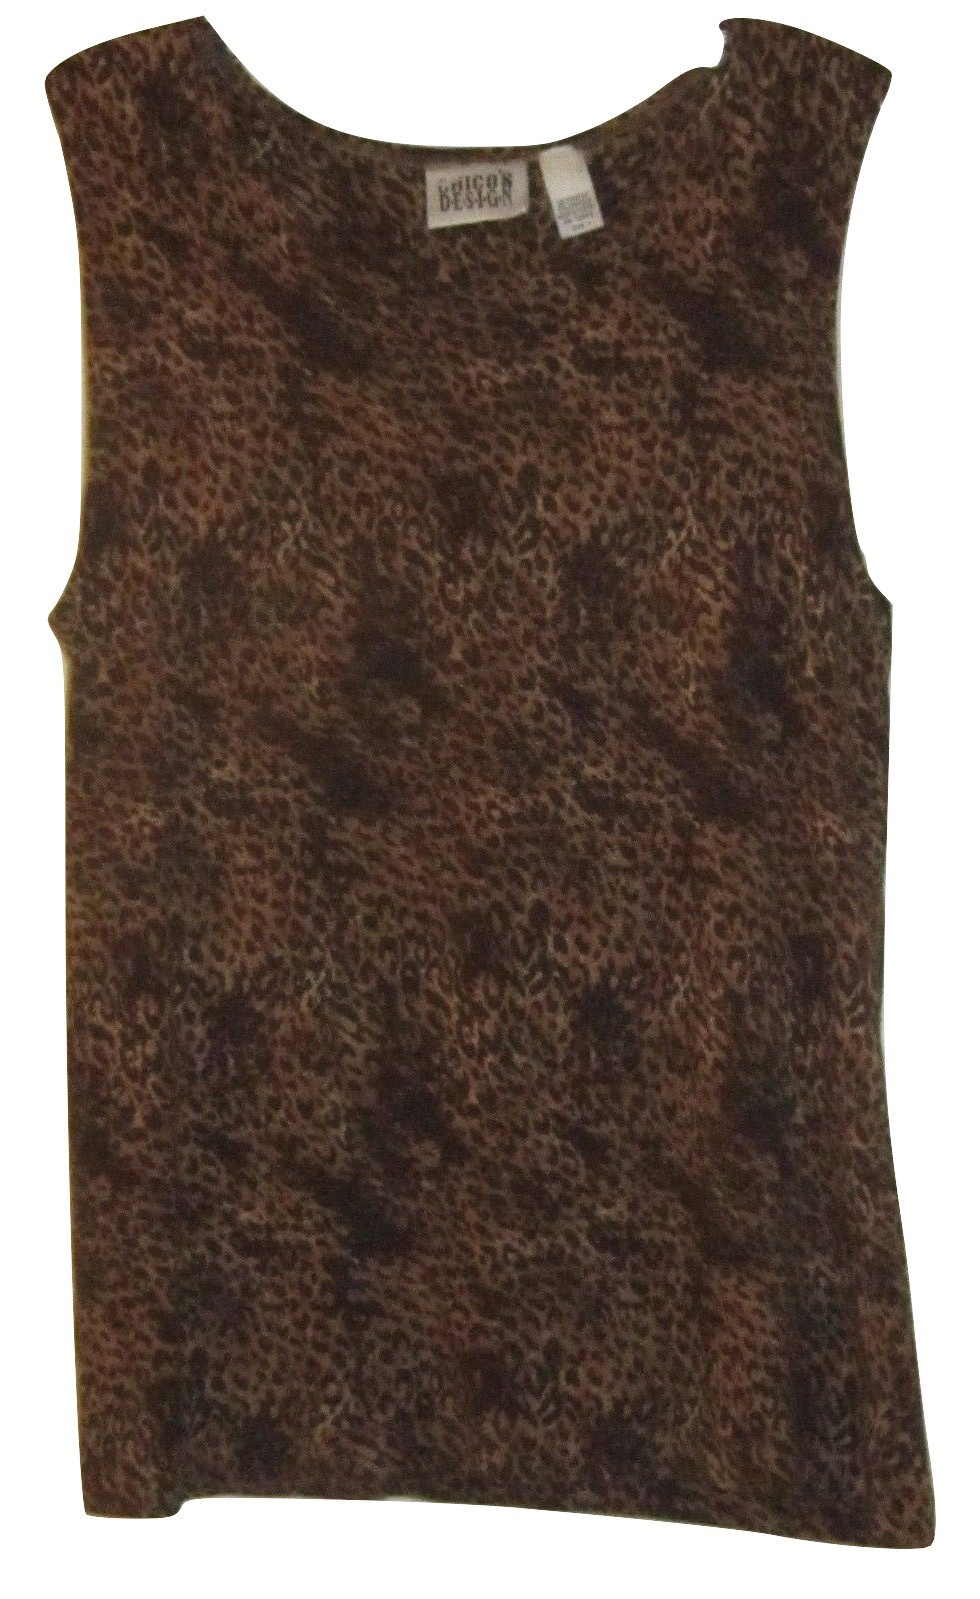 5269838c2 Chico's 1 Sleeveless Animal Print Top Size and 50 similar items